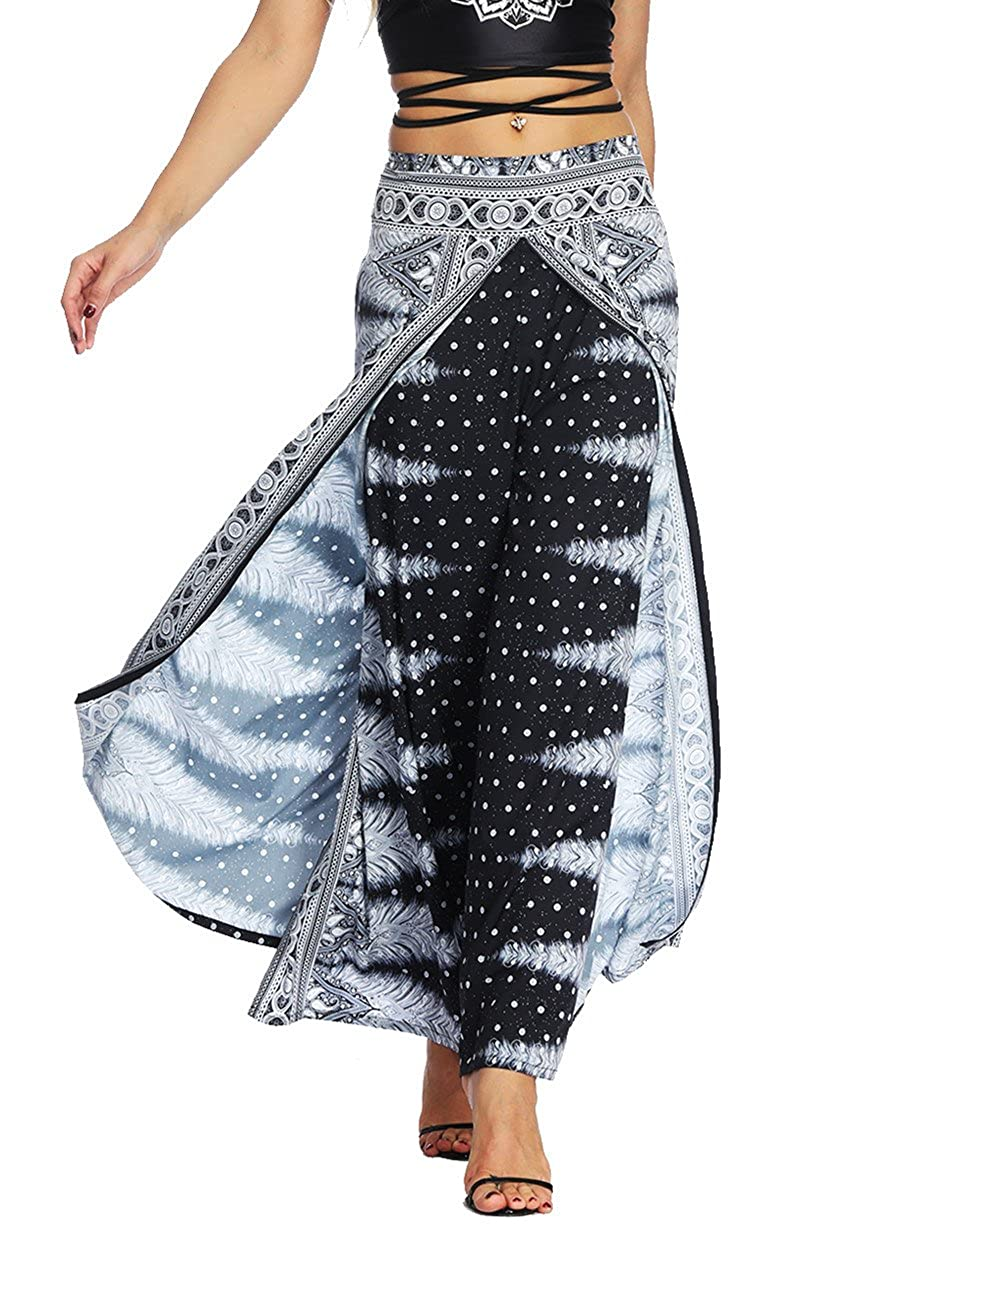 0f6d9f604e0d9 Details:Full Length,Wide Leg,Loose Fit,Elastic Waist,Print,Indie Folk,Hippy  Aladdin Boho Style. Occasions:Ideal For Summer days.